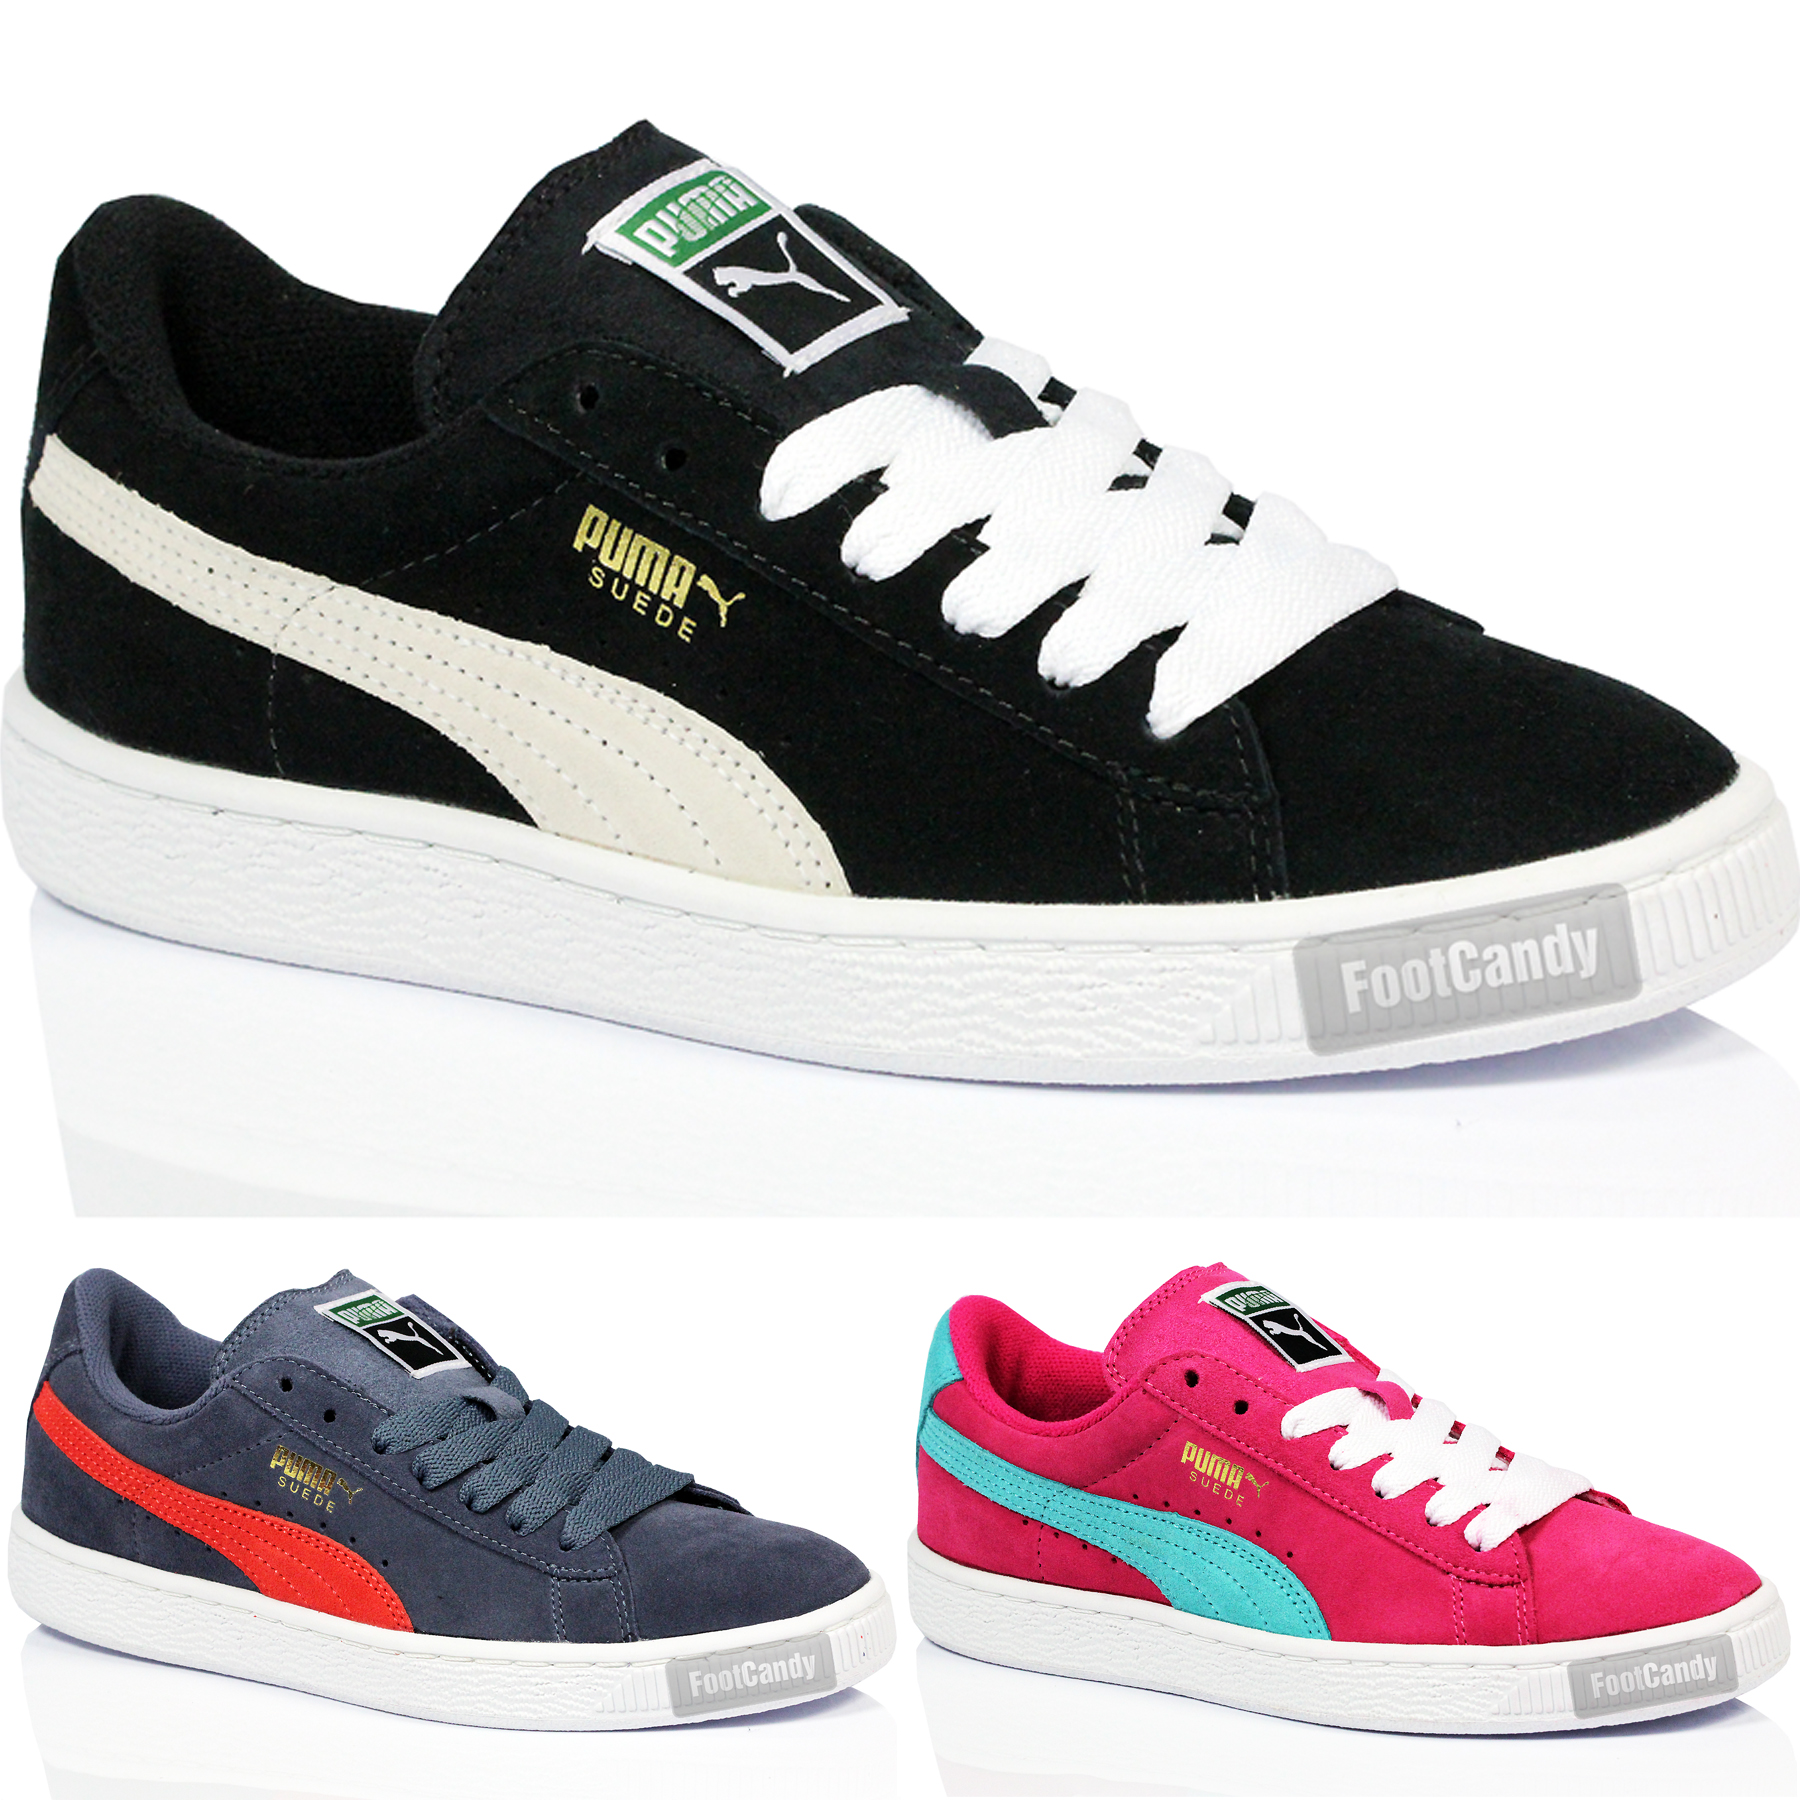 Puma Trainers Girls simplisecurity.co.uk